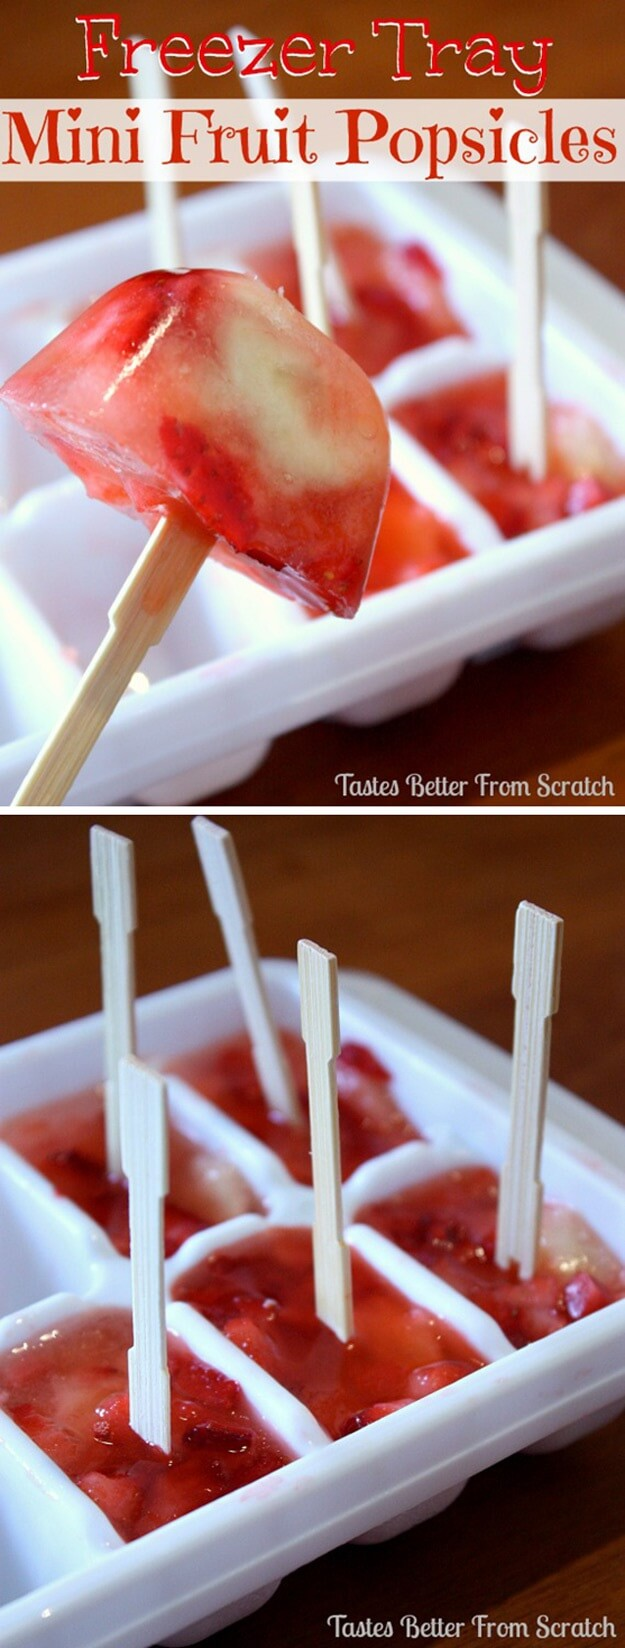 Freezer-Tray-Mini-Fruit-Popsicles-k4craft Clever DIY Projects: Creative way to Use of Ice Cube Tray